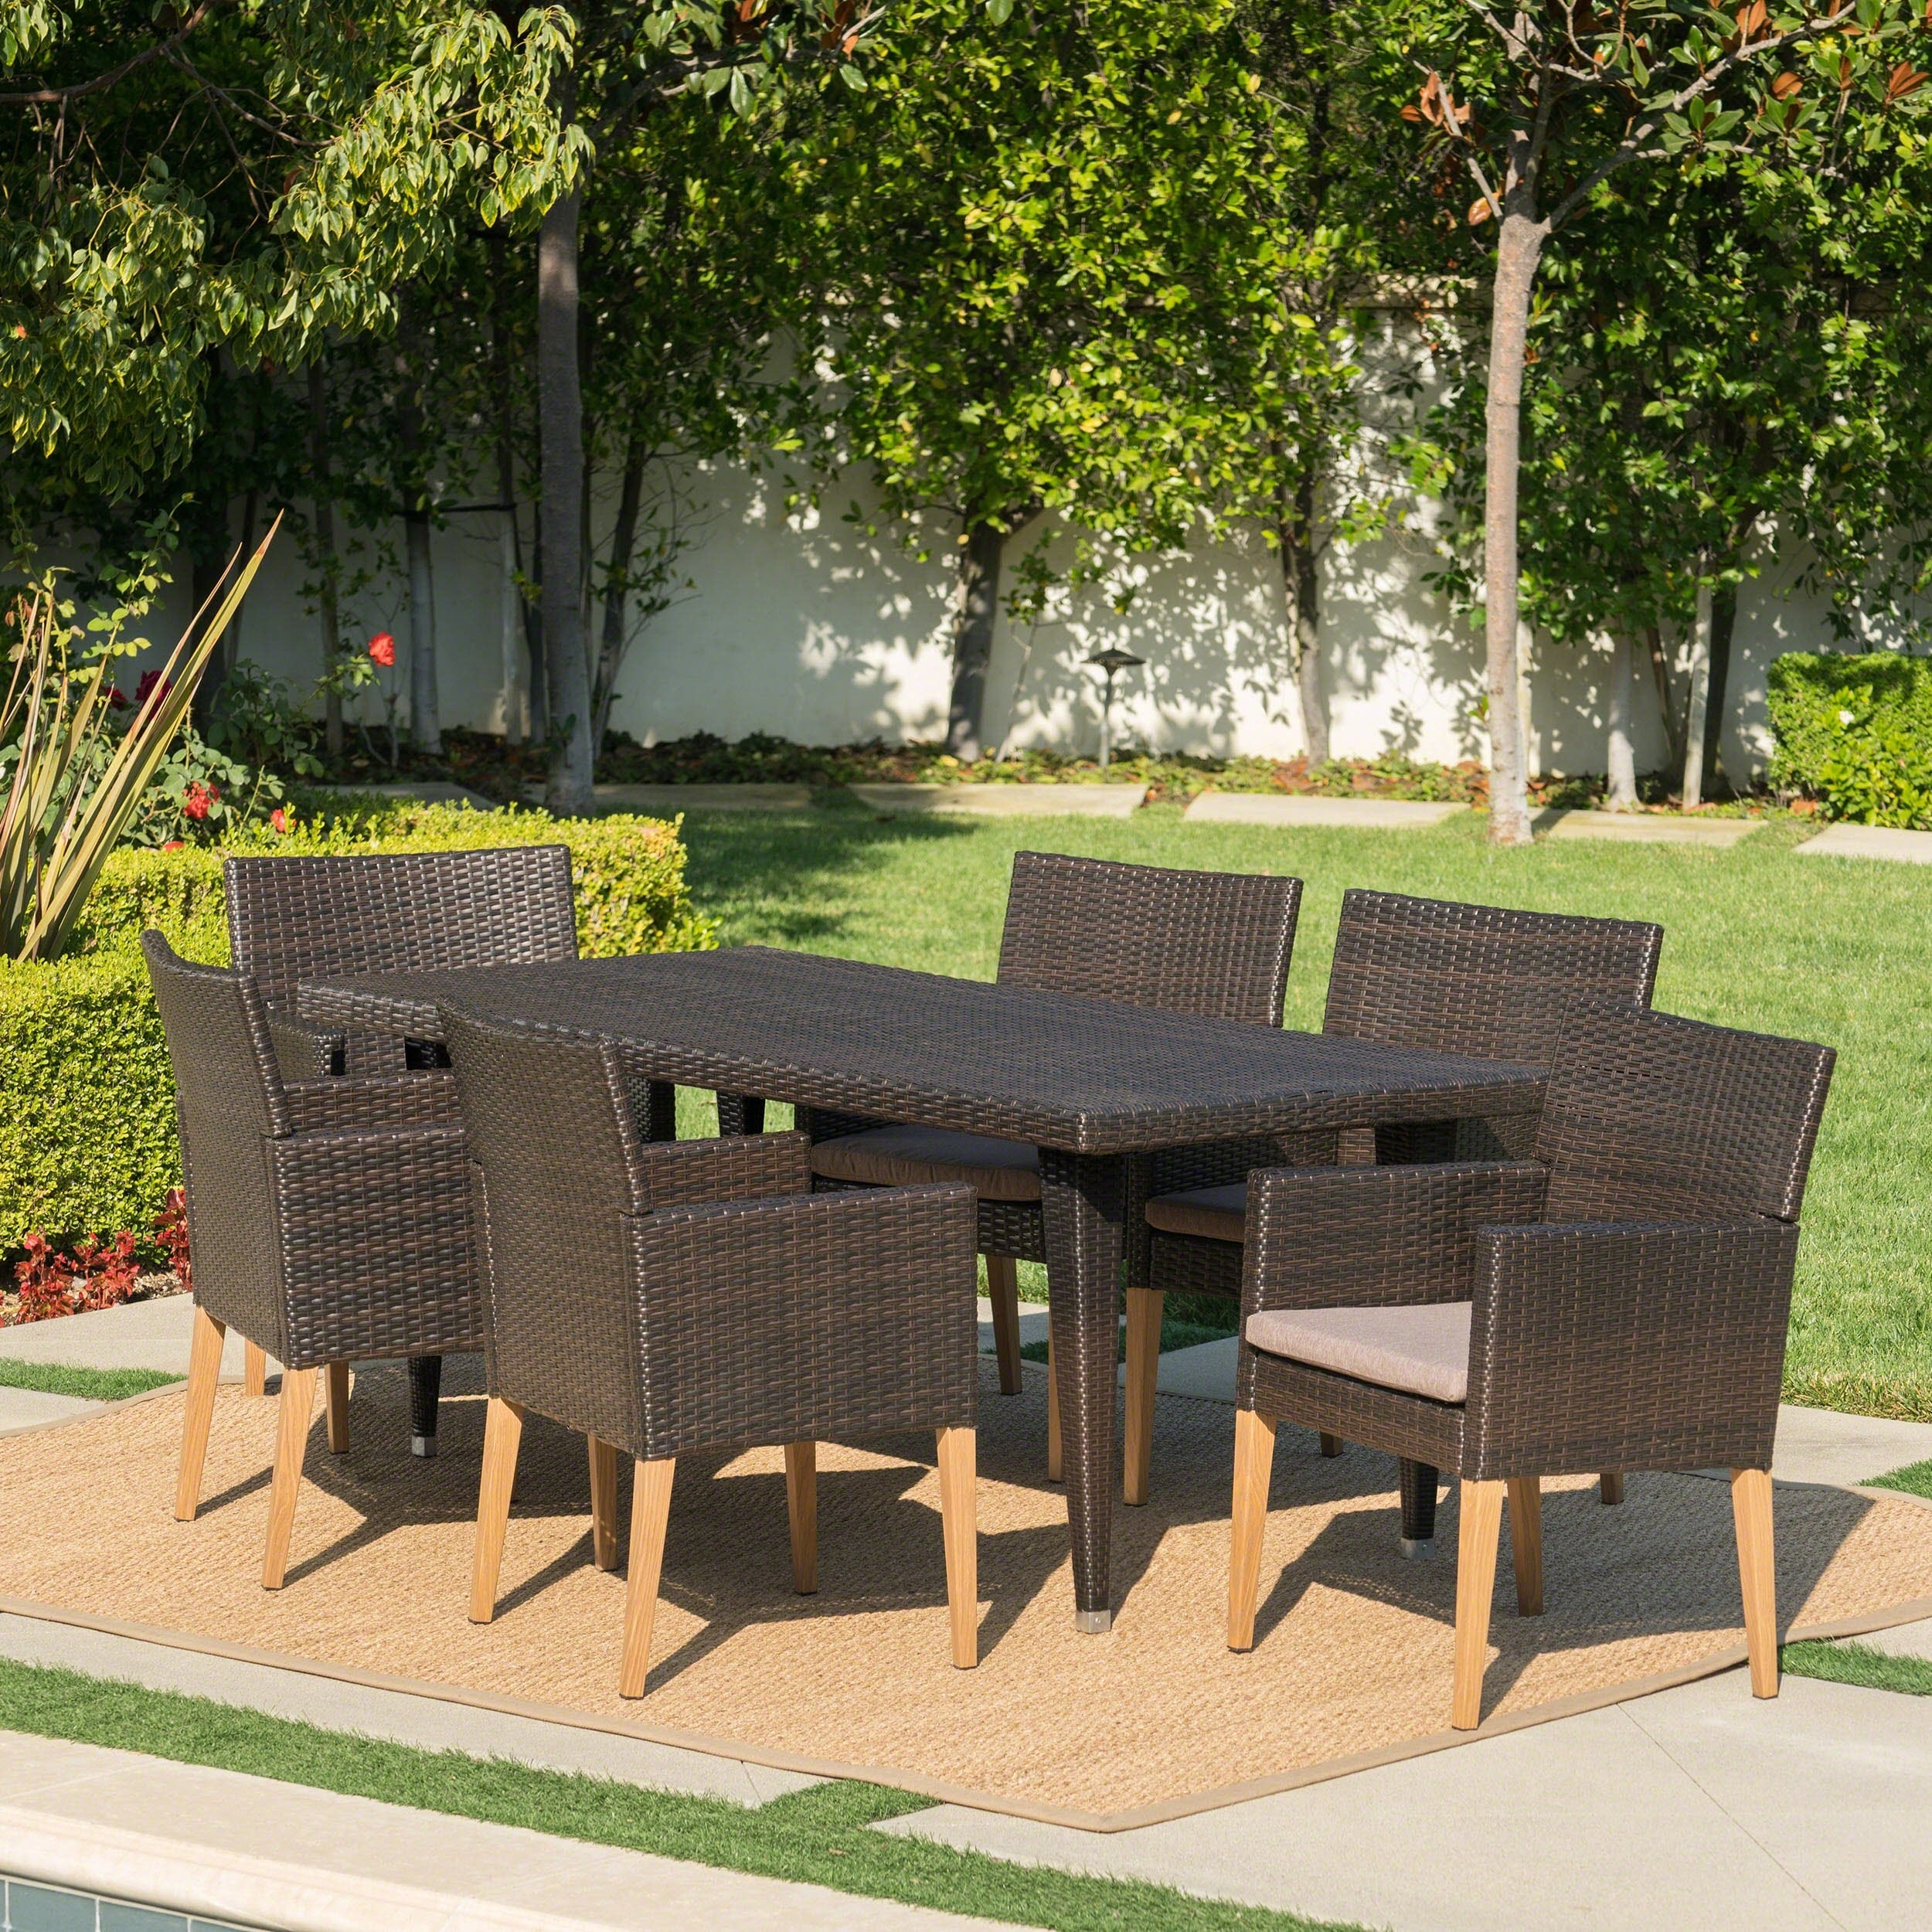 Carlton outdoor 7 piece rectangle wicker wood dining set with cushions by christopher knight home